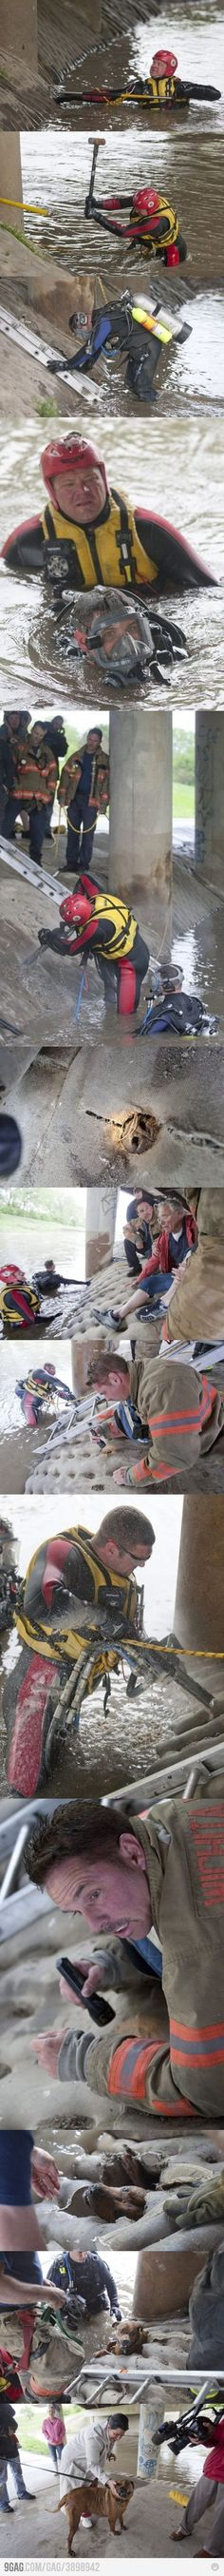 Amazing dog rescue.  http://abcnews.go.com/blogs/headlines/2012/04/kansas-firefighters-rescue-trapped-dog-from-rising-river-waters/